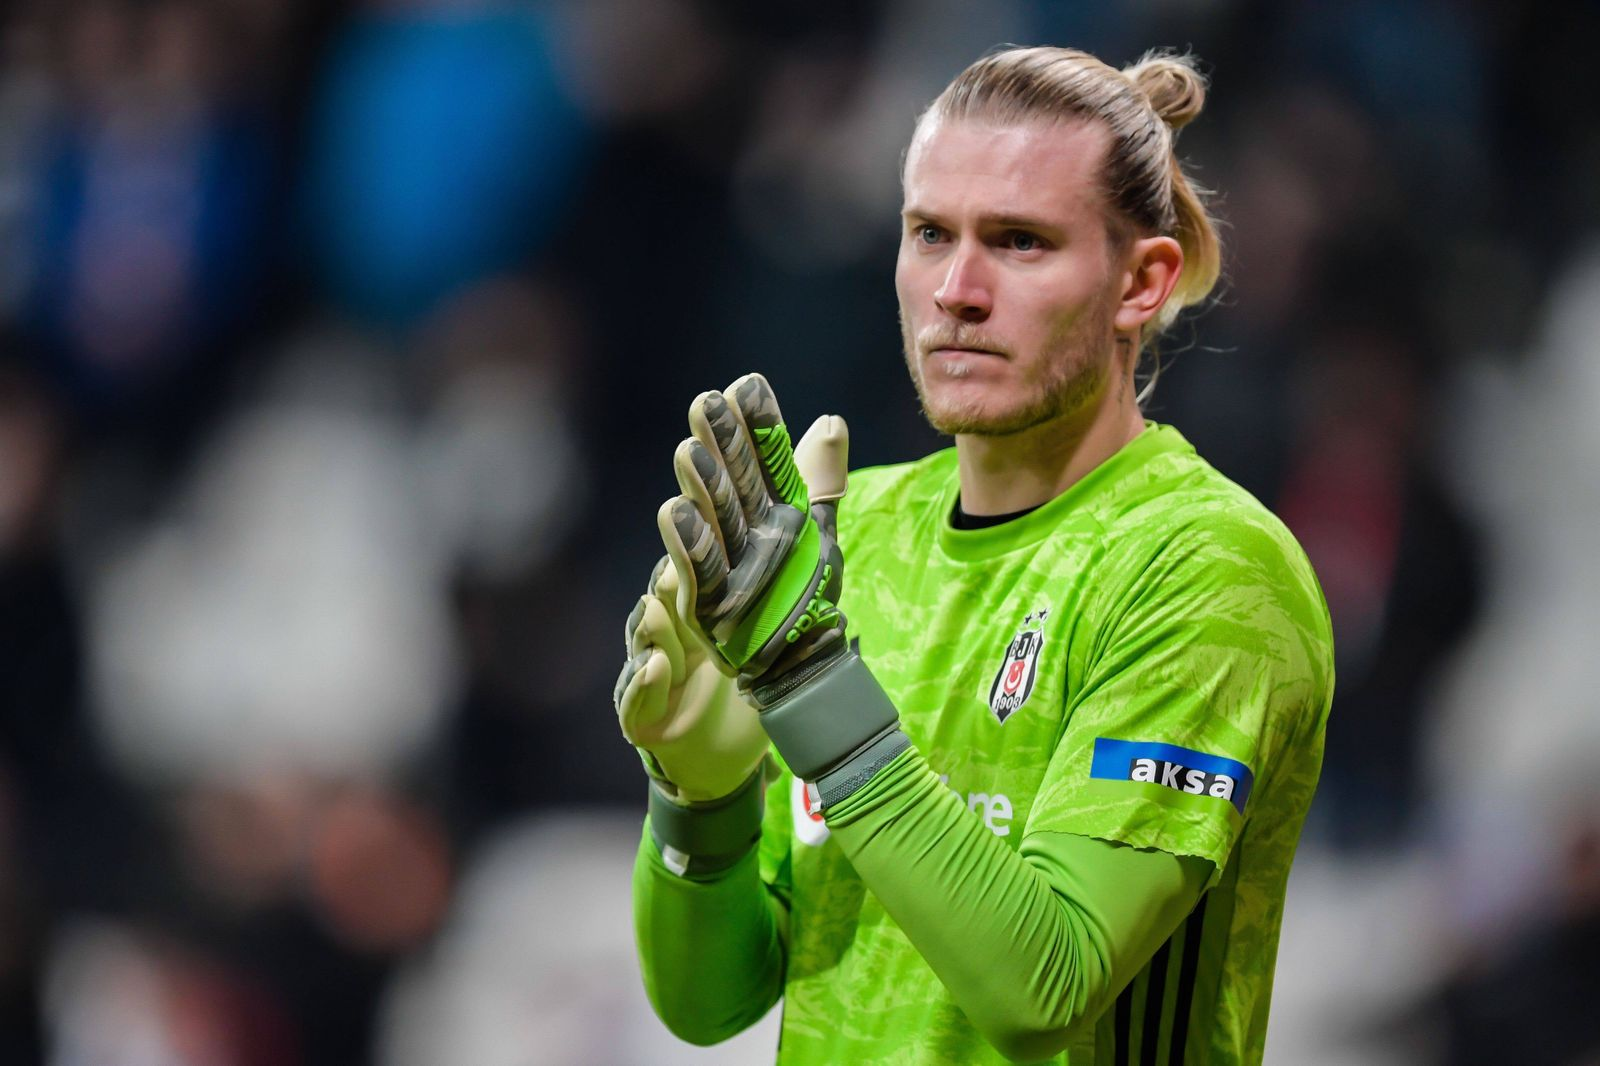 goalkeeper Loris Karius of Besiktas JK mad a great fault at the first goal of Sivasspor during the Turkish Spor Toto Su